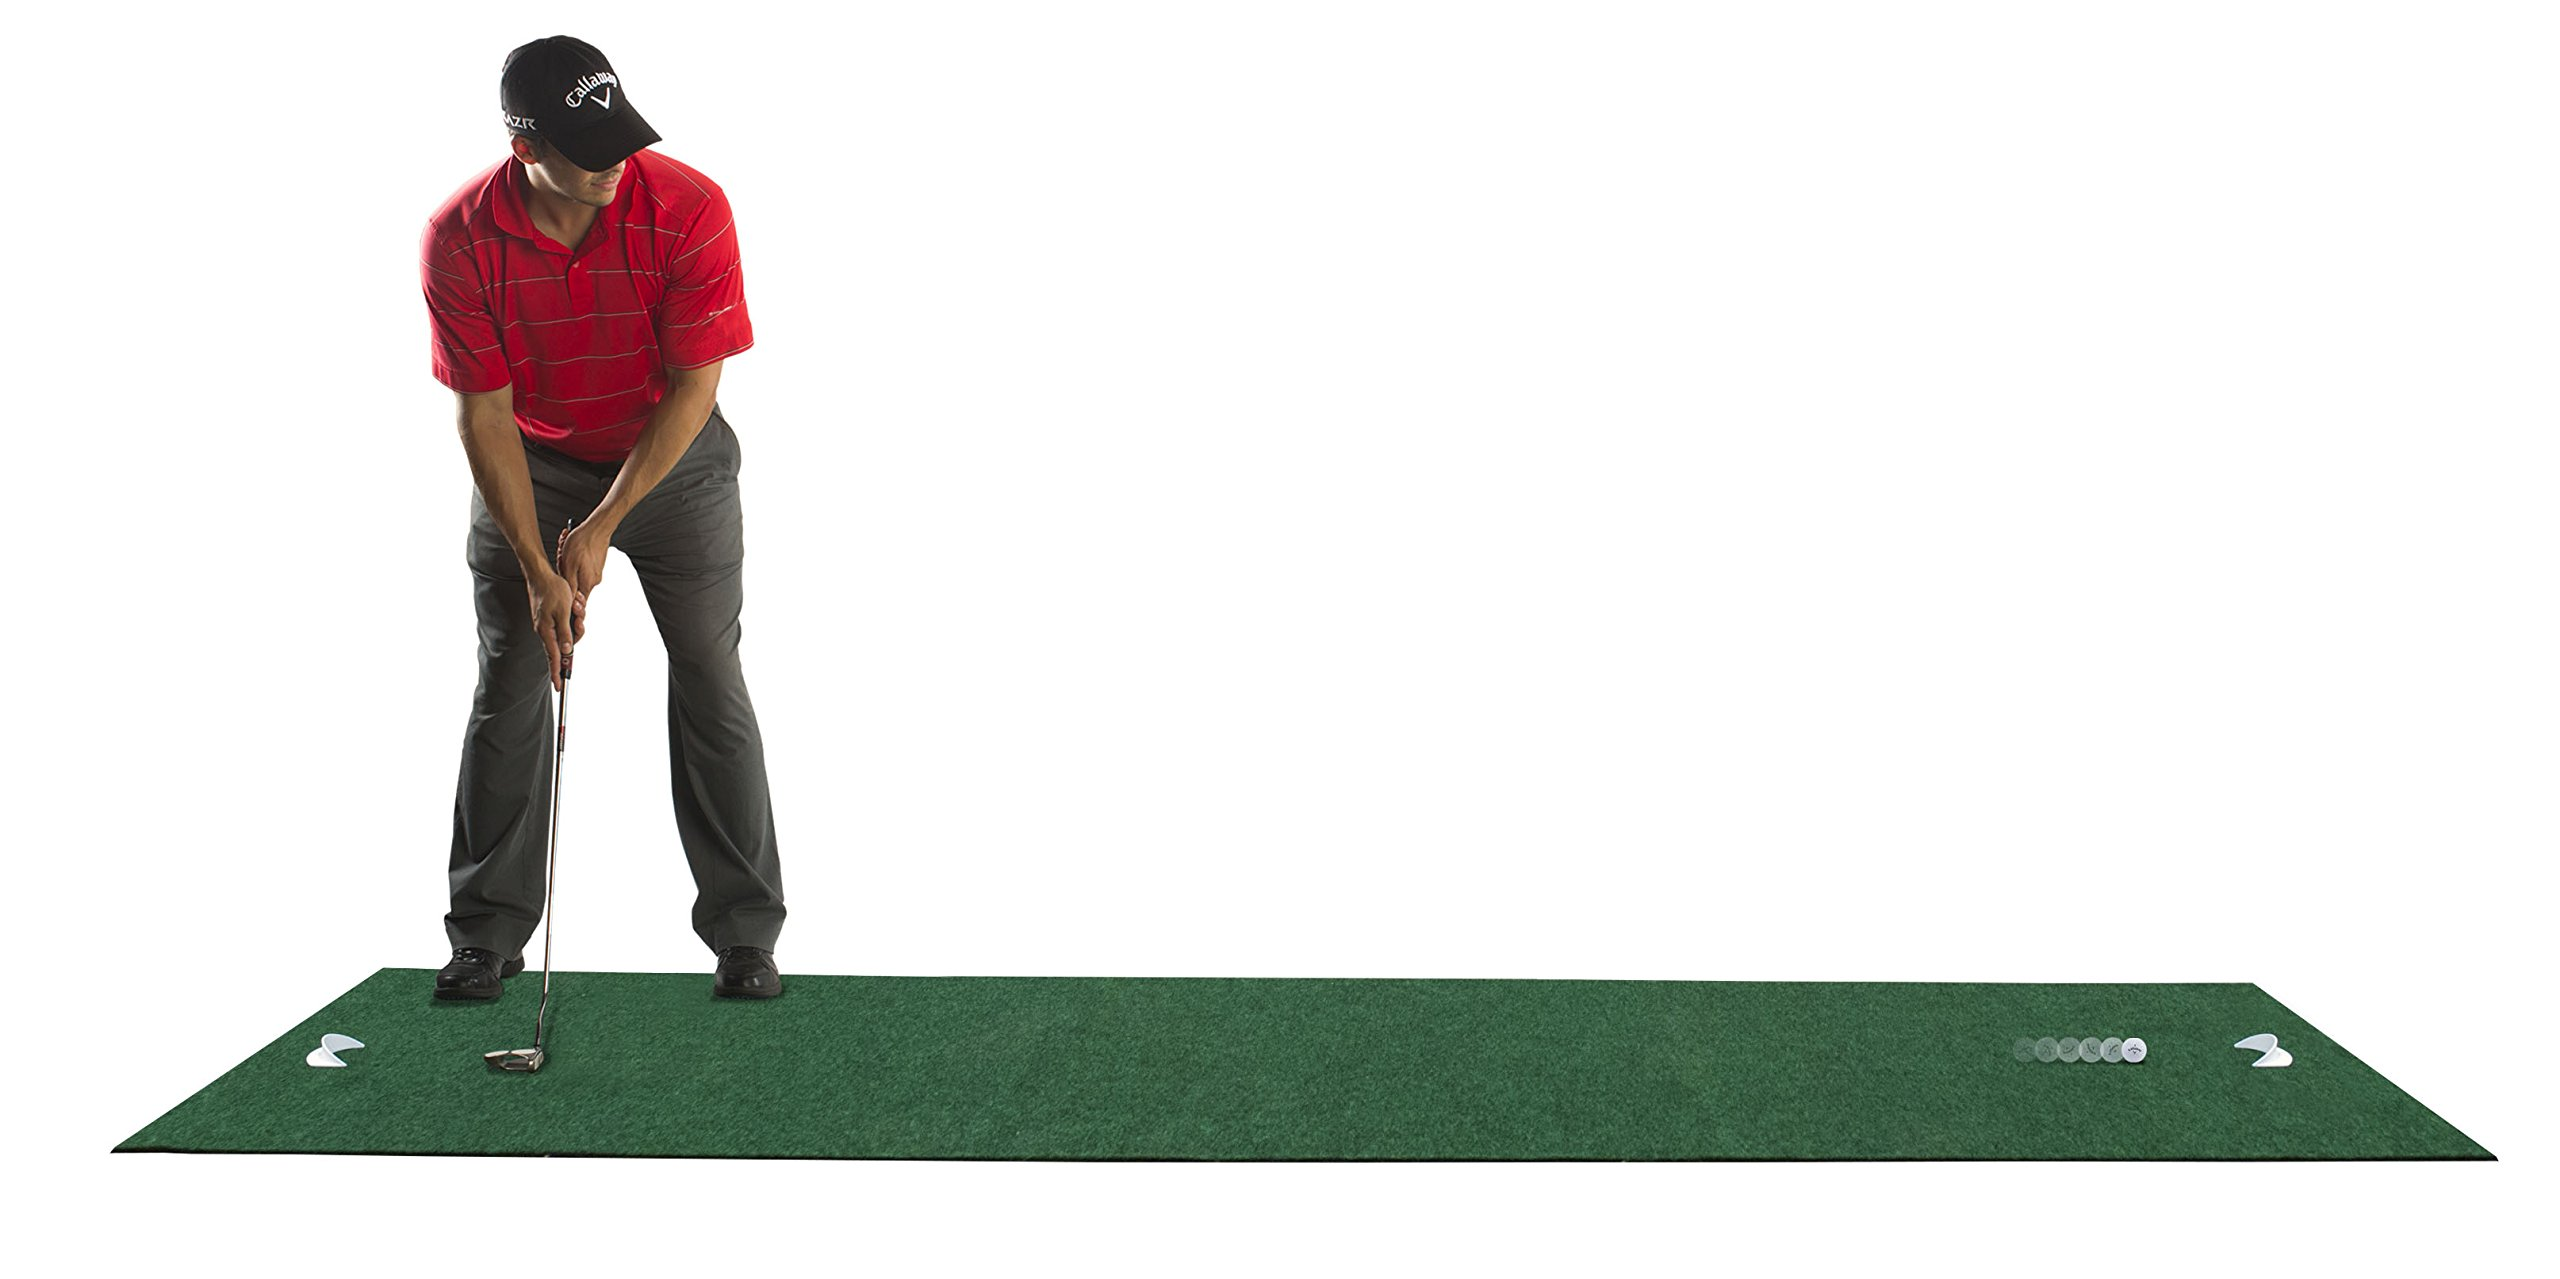 ODYSSEY Deluxe Golf Putting Mat, 11'